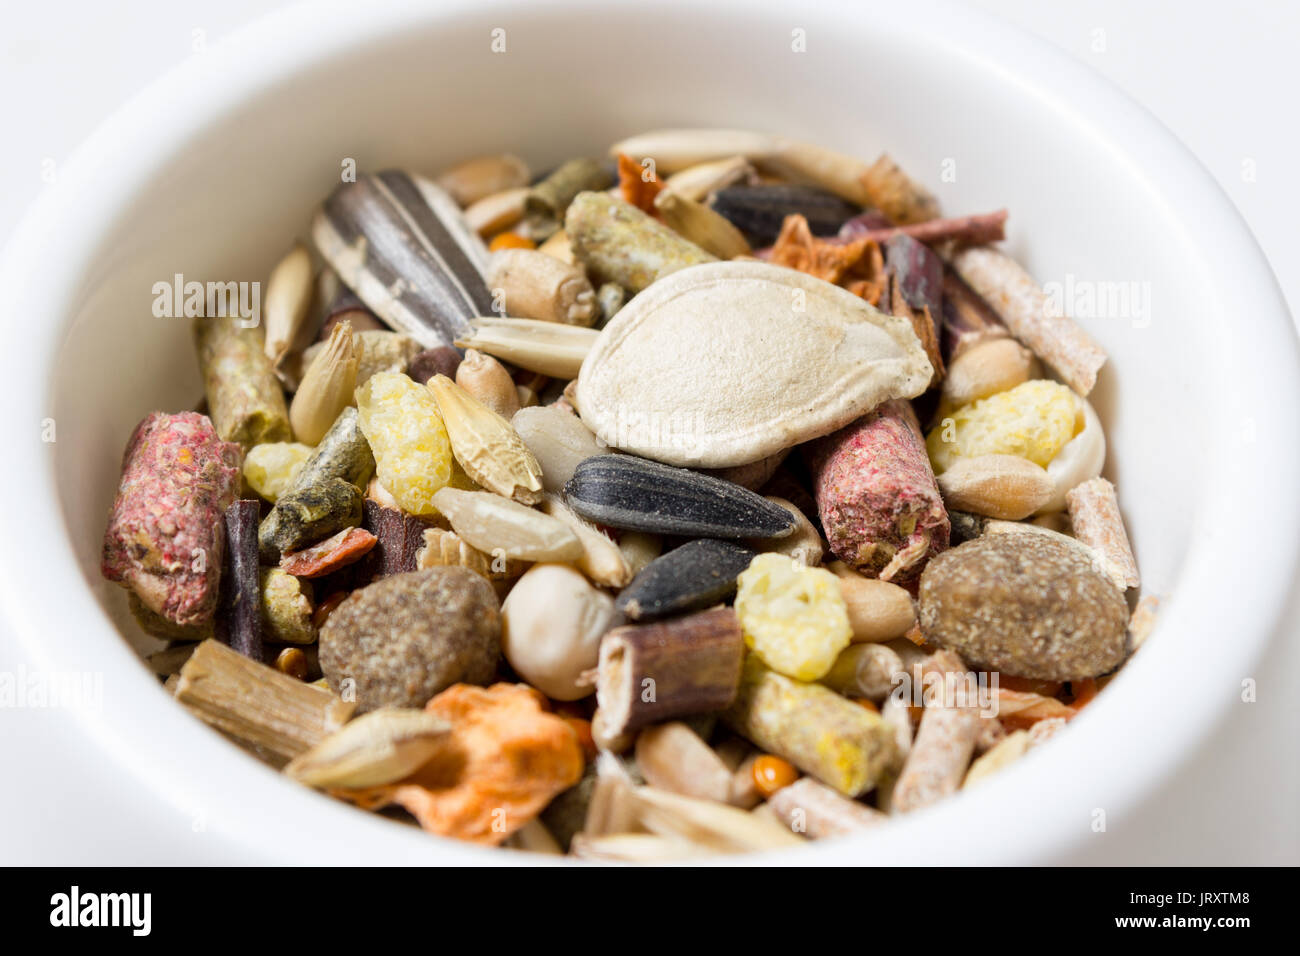 Feeder with grain and cereal feed for rodents - Stock Image